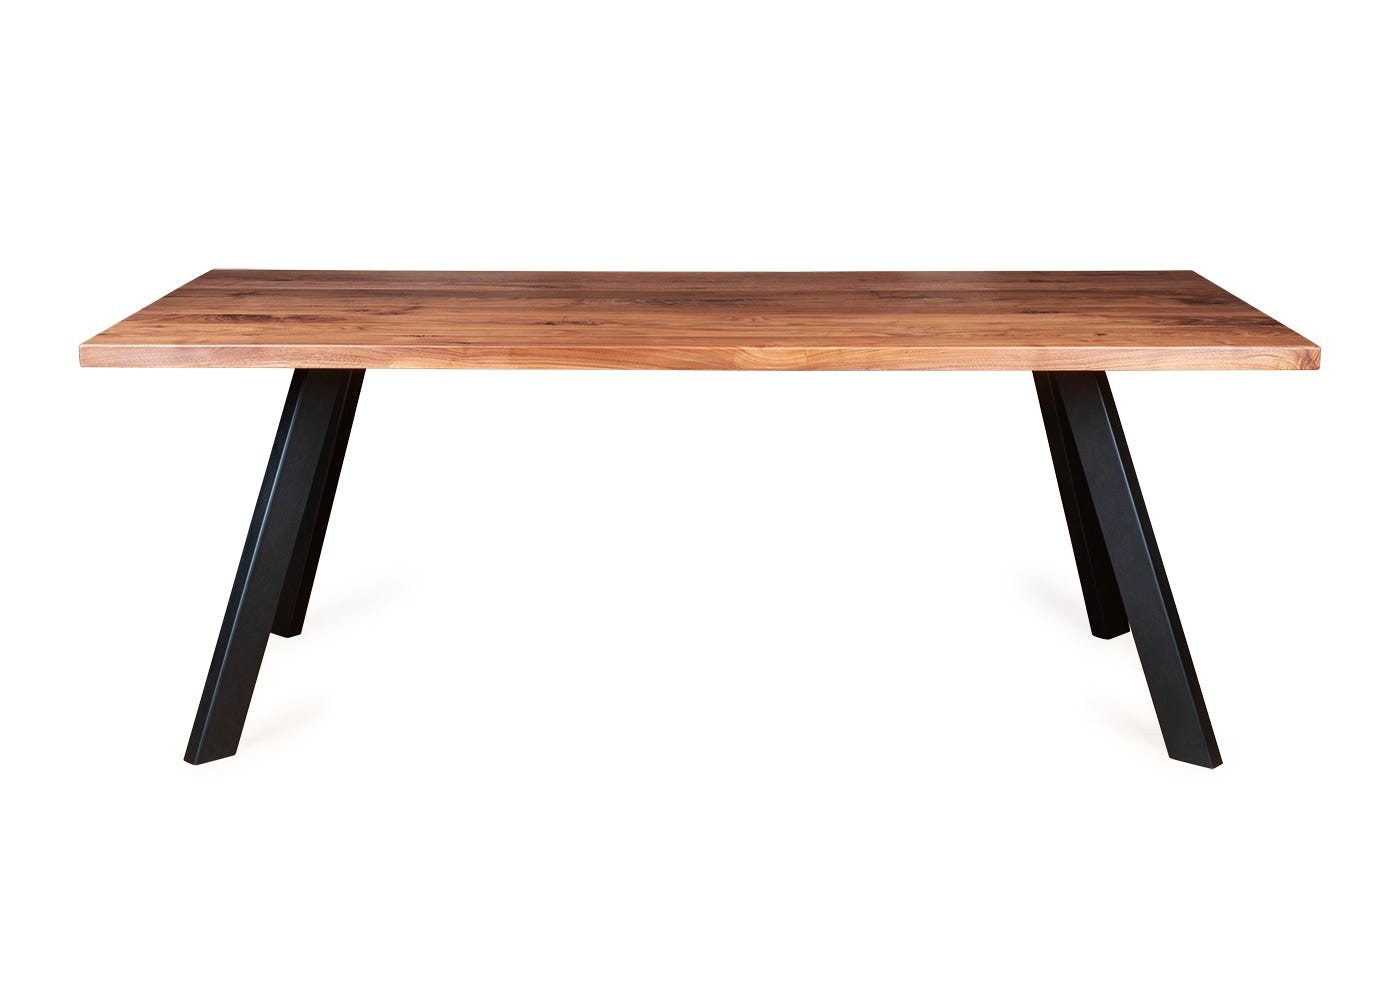 Madrid dining table in oiled walnut with a straight edge profile.